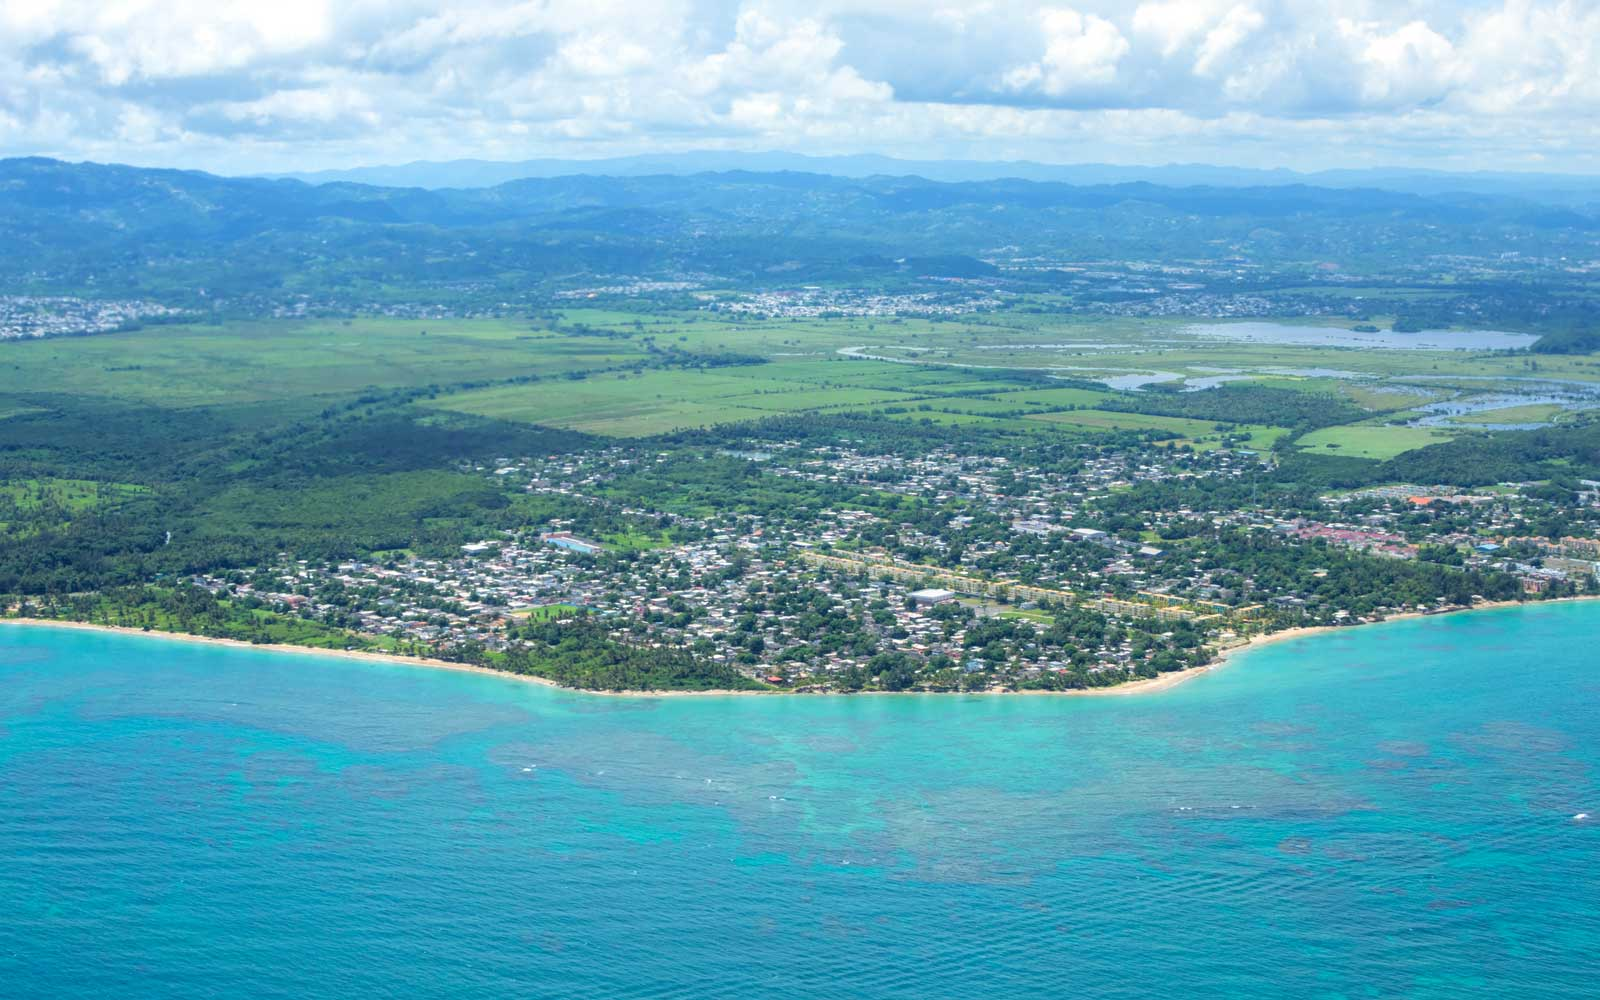 Aerial view of Puerto Rico coastal city of Vieques in Loiza